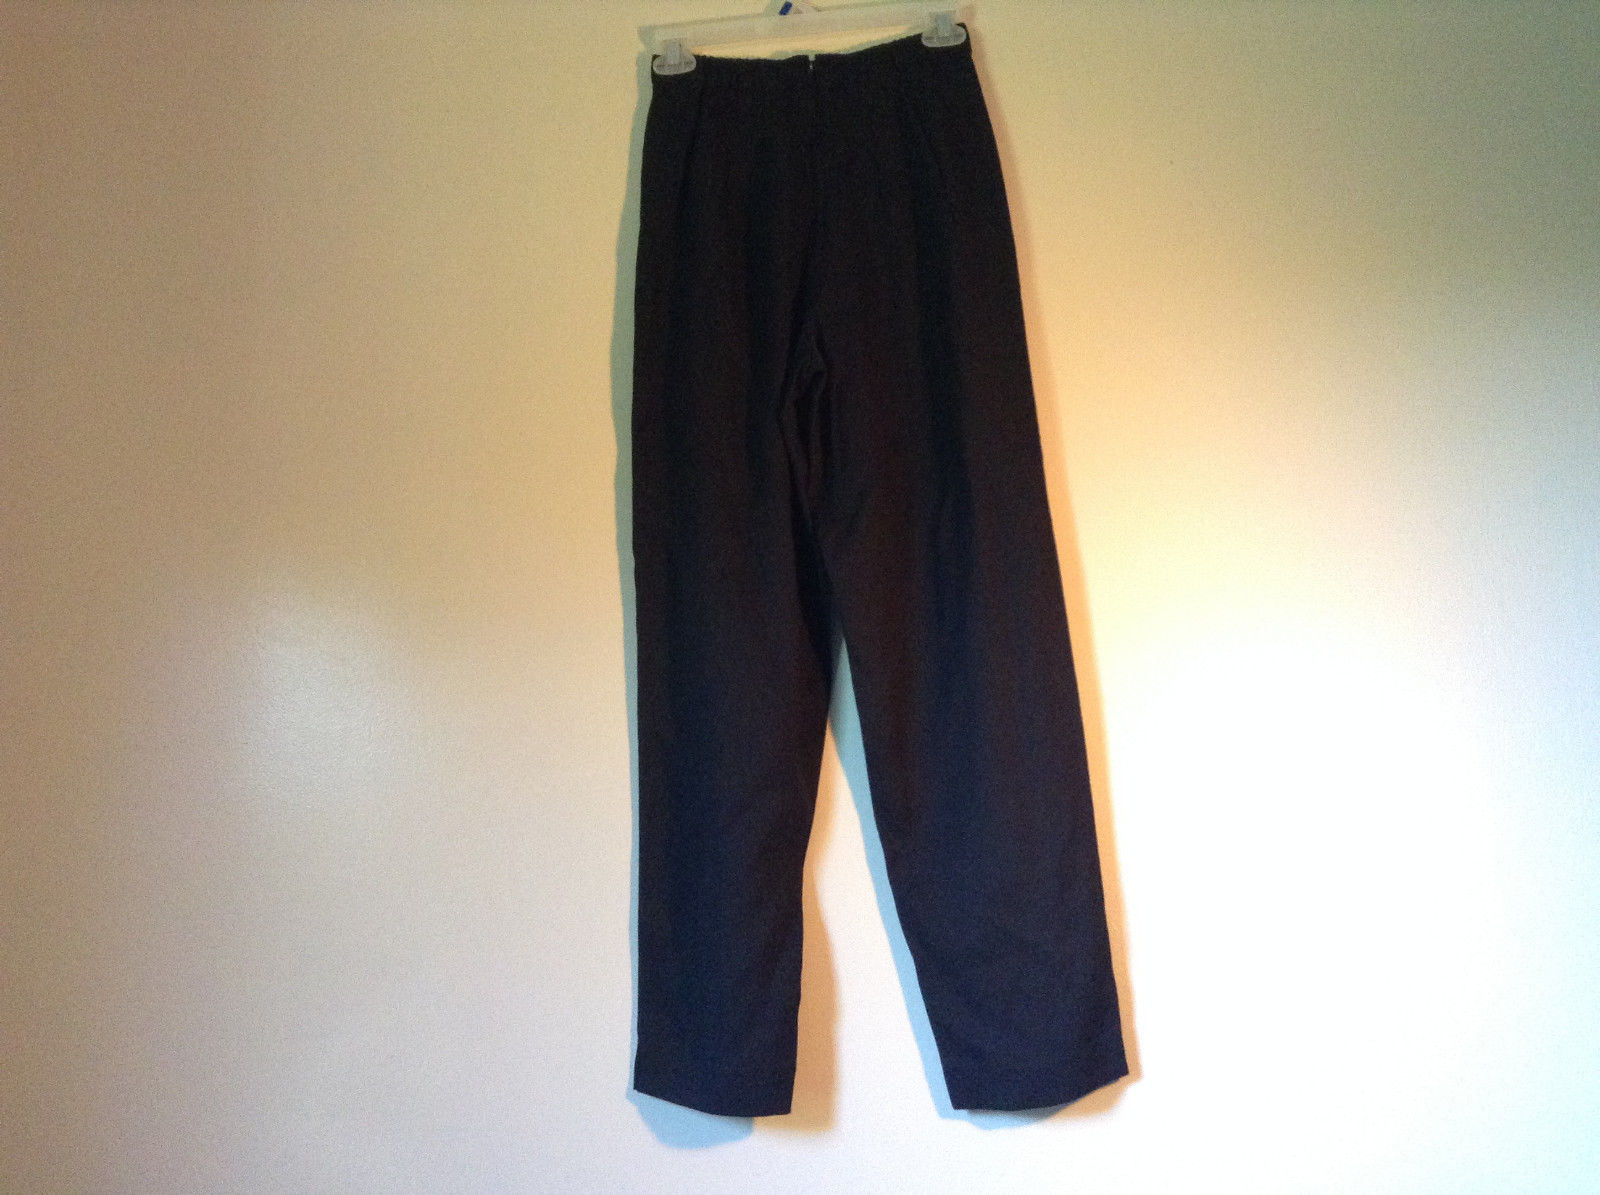 Size 6 Petite Black Sweat Pants No Brand Tag